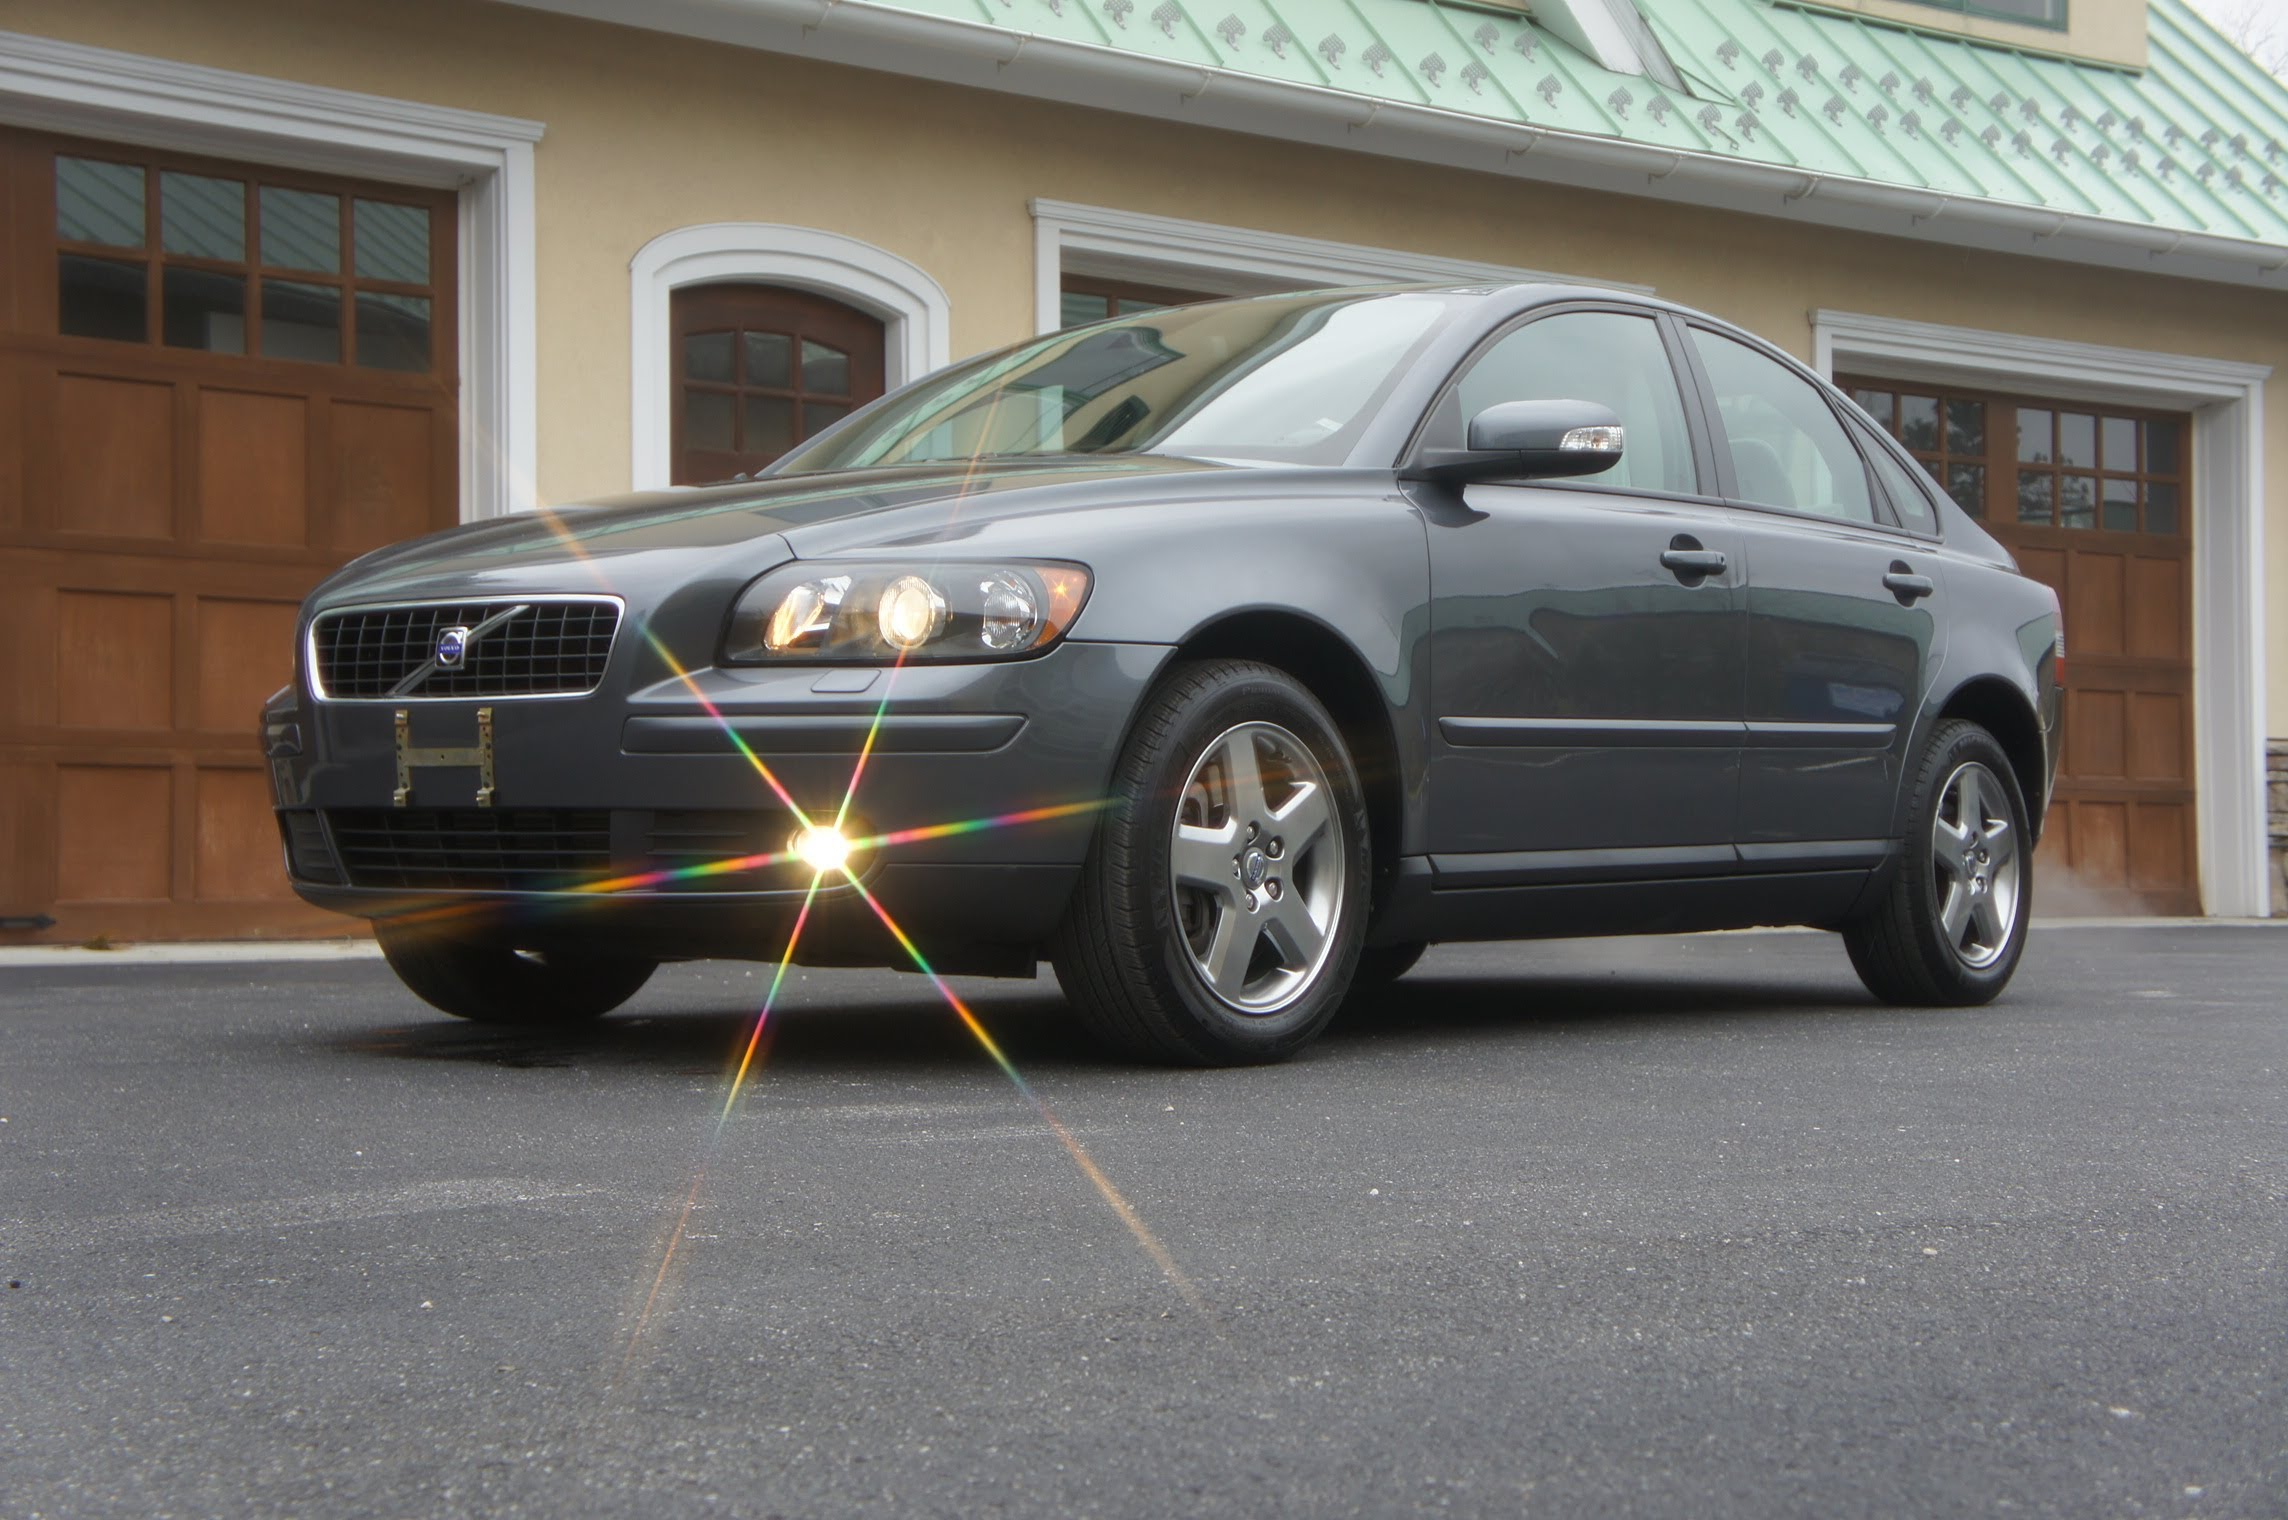 volvo s40 t5 the perfect car for the driver who wants a manual rh bostonautoblog com 2000 Volvo S40 1 9T Review 2000 Volvo S40 Interior